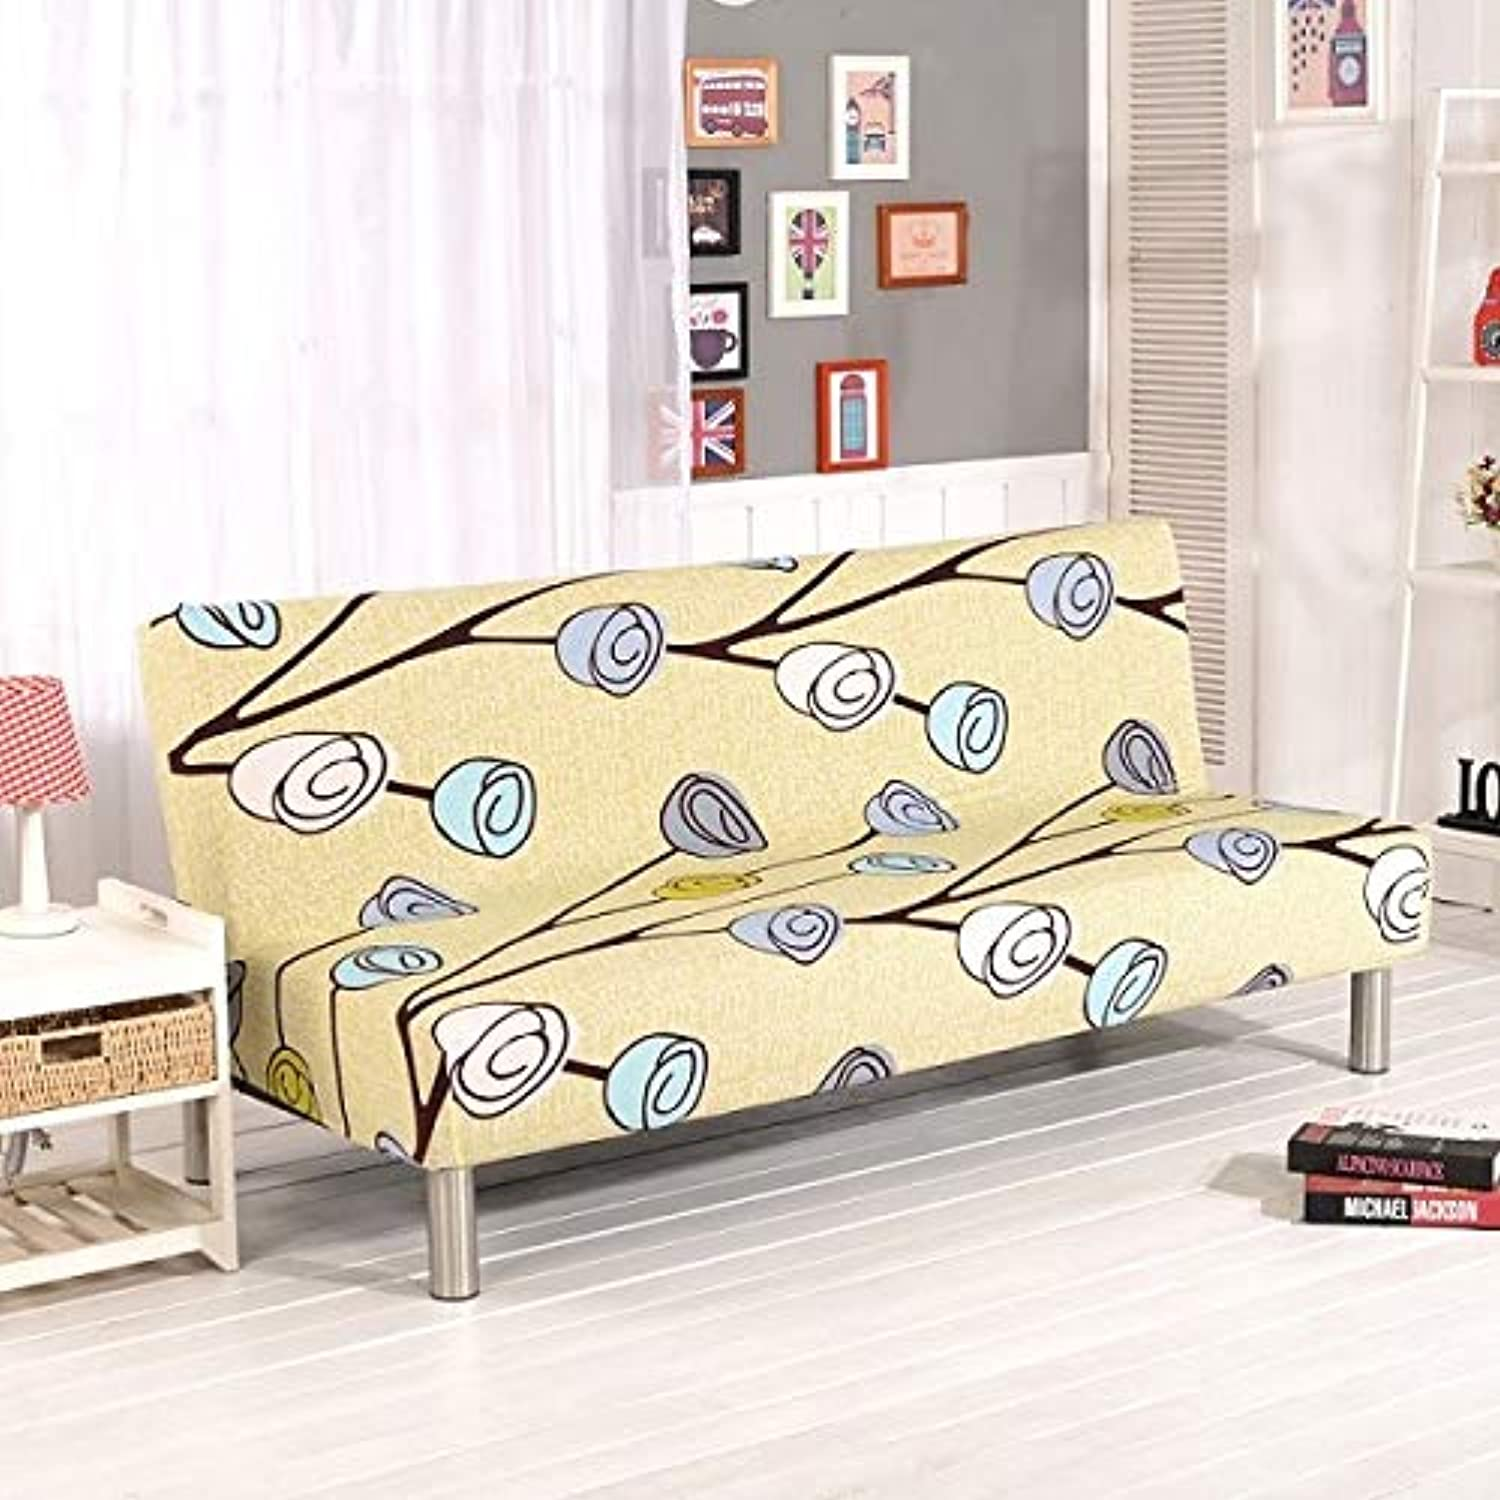 Farmerly Sofa Cover Elastic Sofa Bed Cover All-Inclusive Slipcover for Sofa Without Armrest No Handrail Cover Size 160-210cm   16, 160 to 195cm